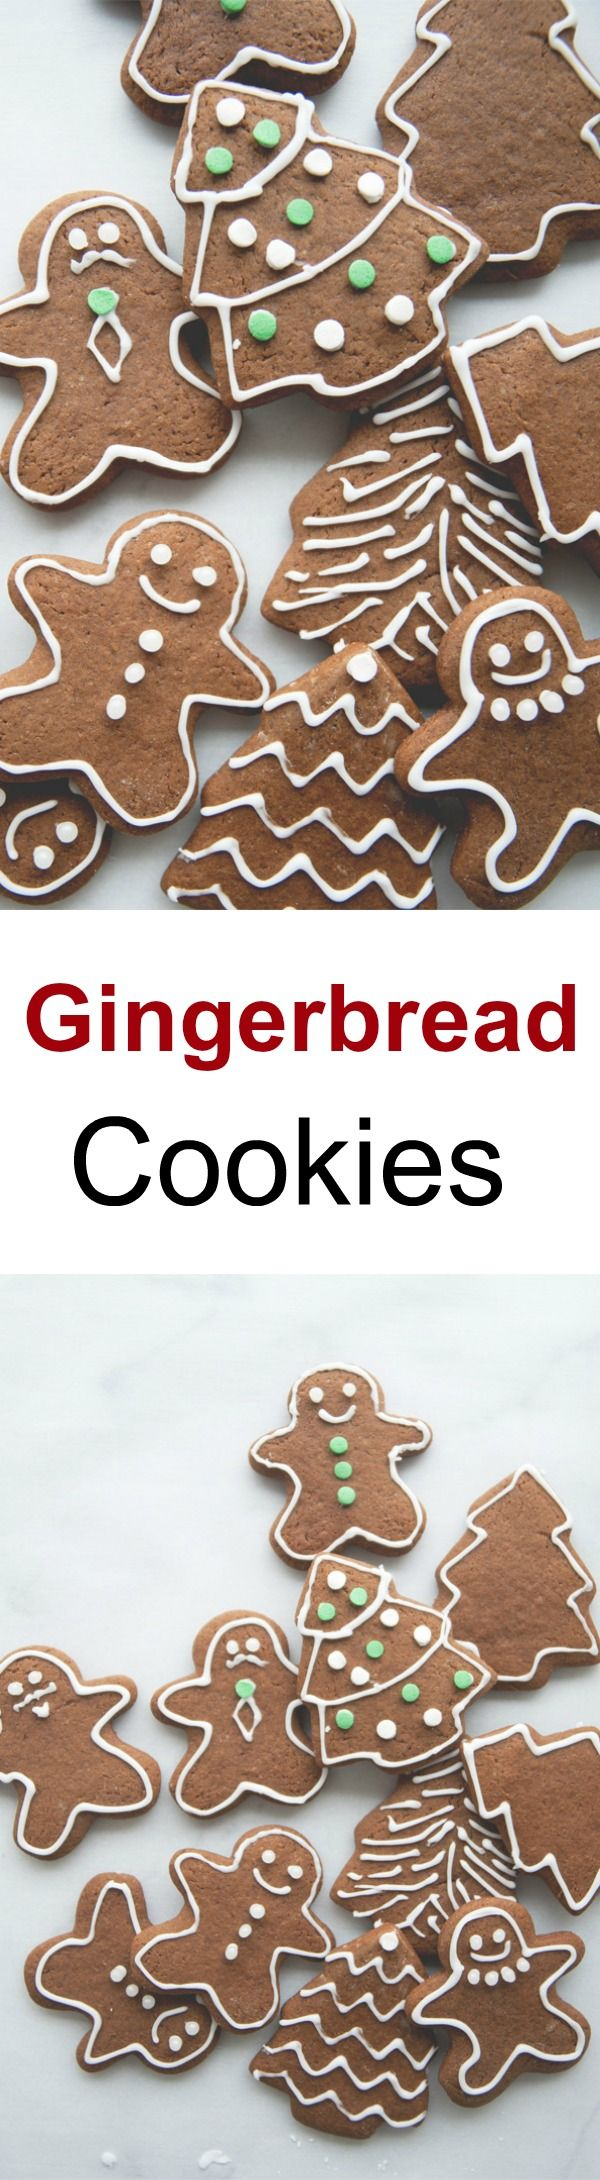 Gingerbread Cookies – the best gingerbread cookies recipe by @Claire Thomas. Yields crispy, aromatic and festive holidays cookies | rasamalaysia.com